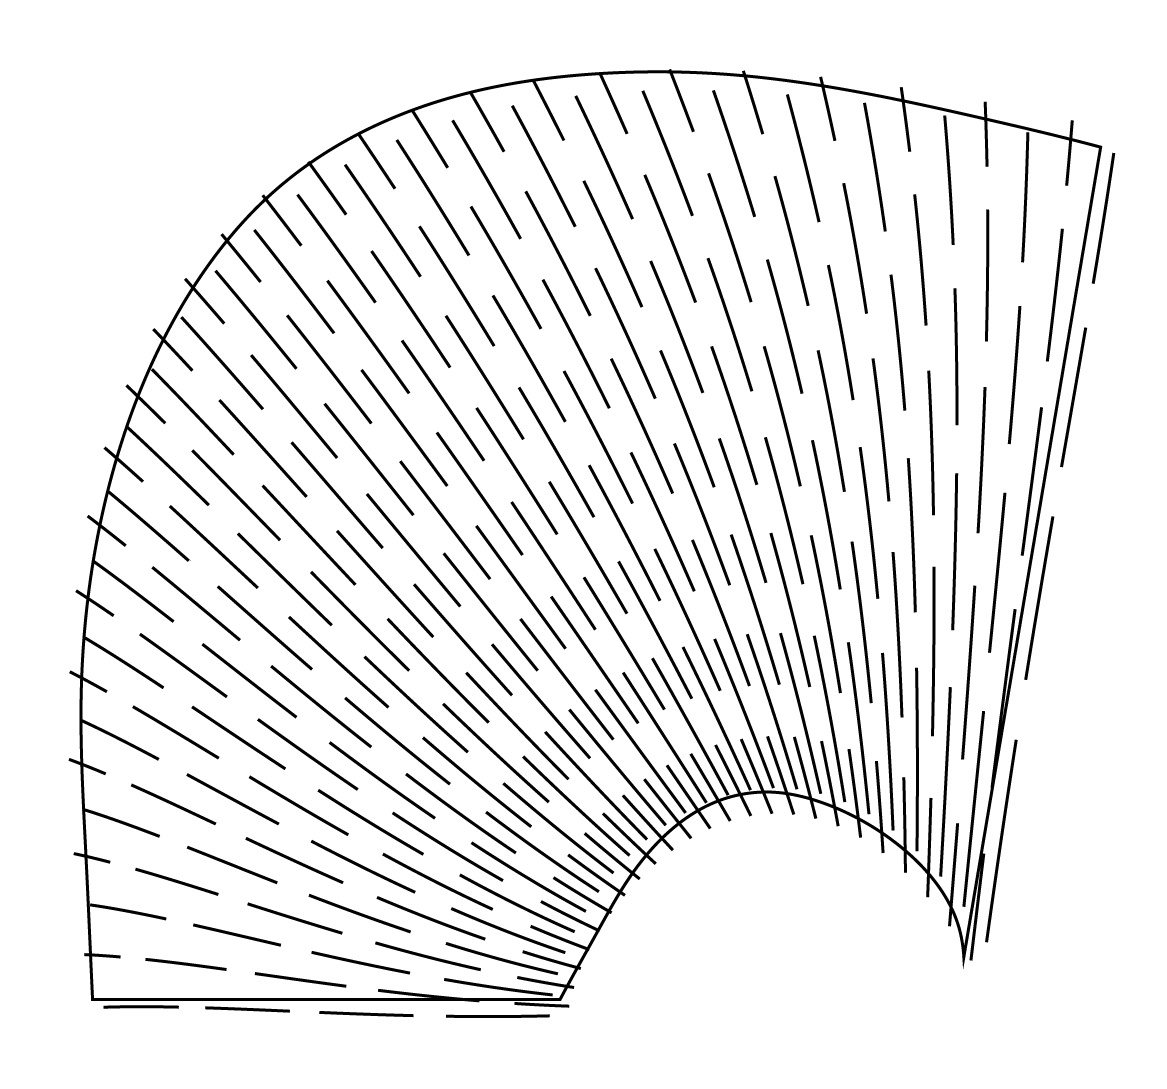 Picture of Bending Along a Curve